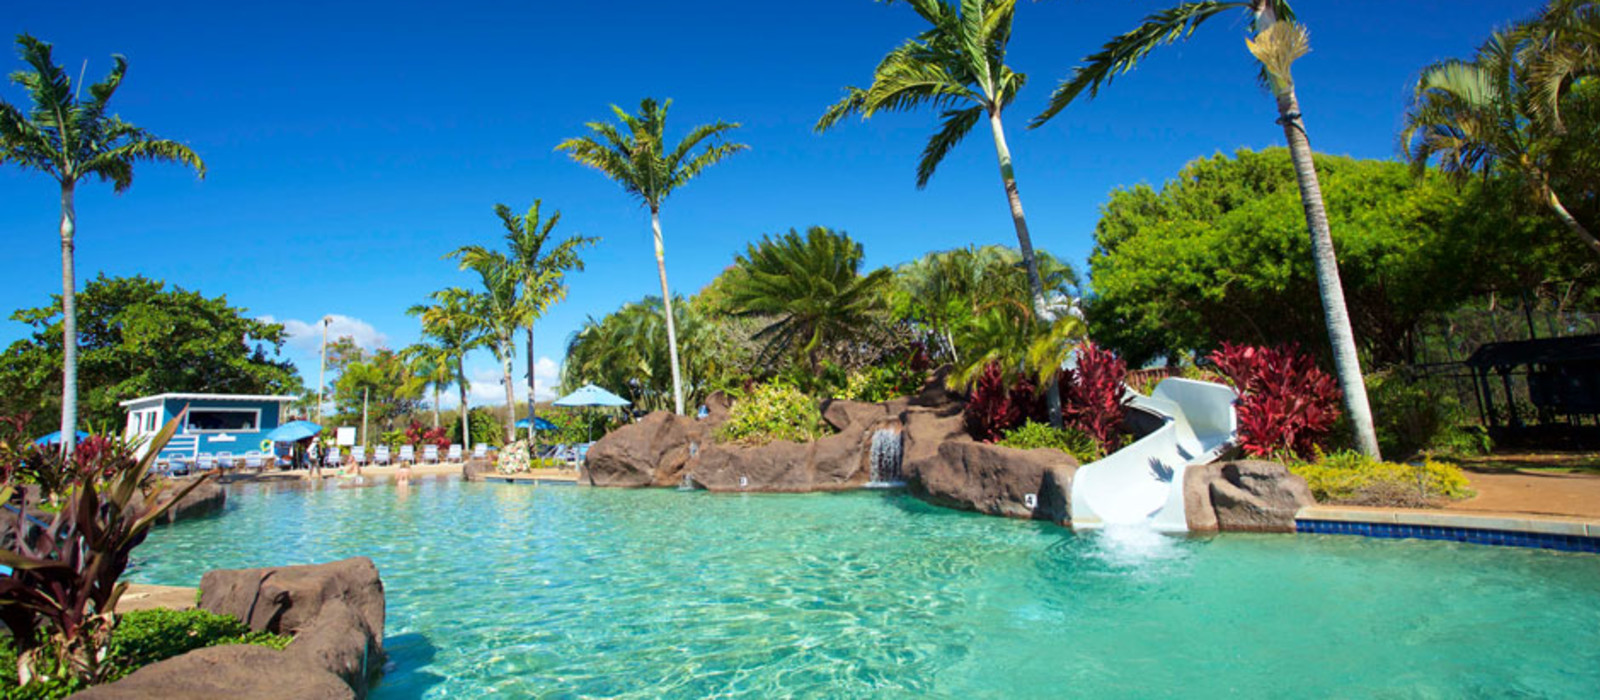 Hotel Kiahuna Plantation & The Beach Bungalows Hawaii